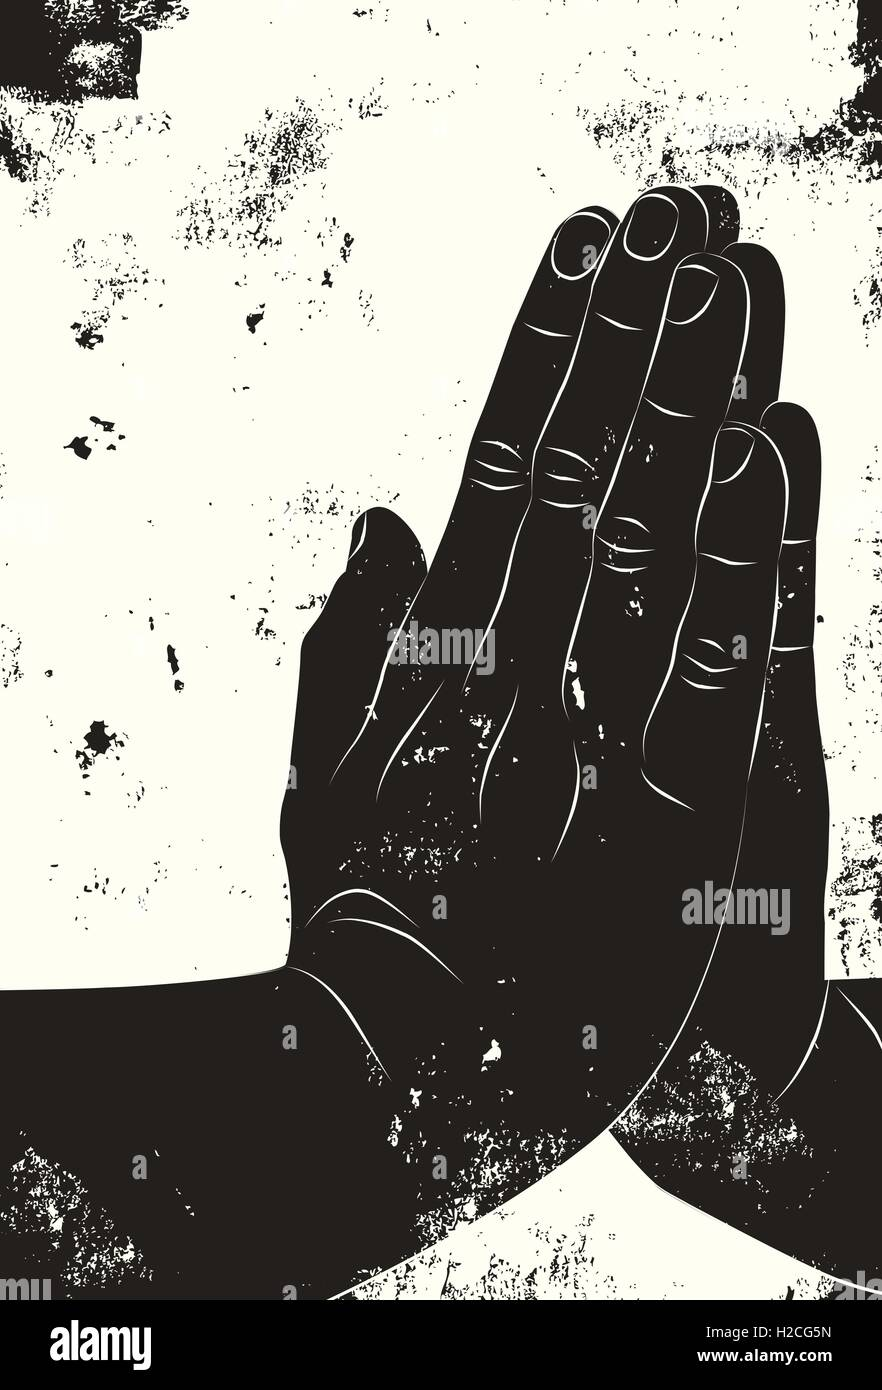 Praying hands Two hands together in a praying position over a textured background. - Stock Vector